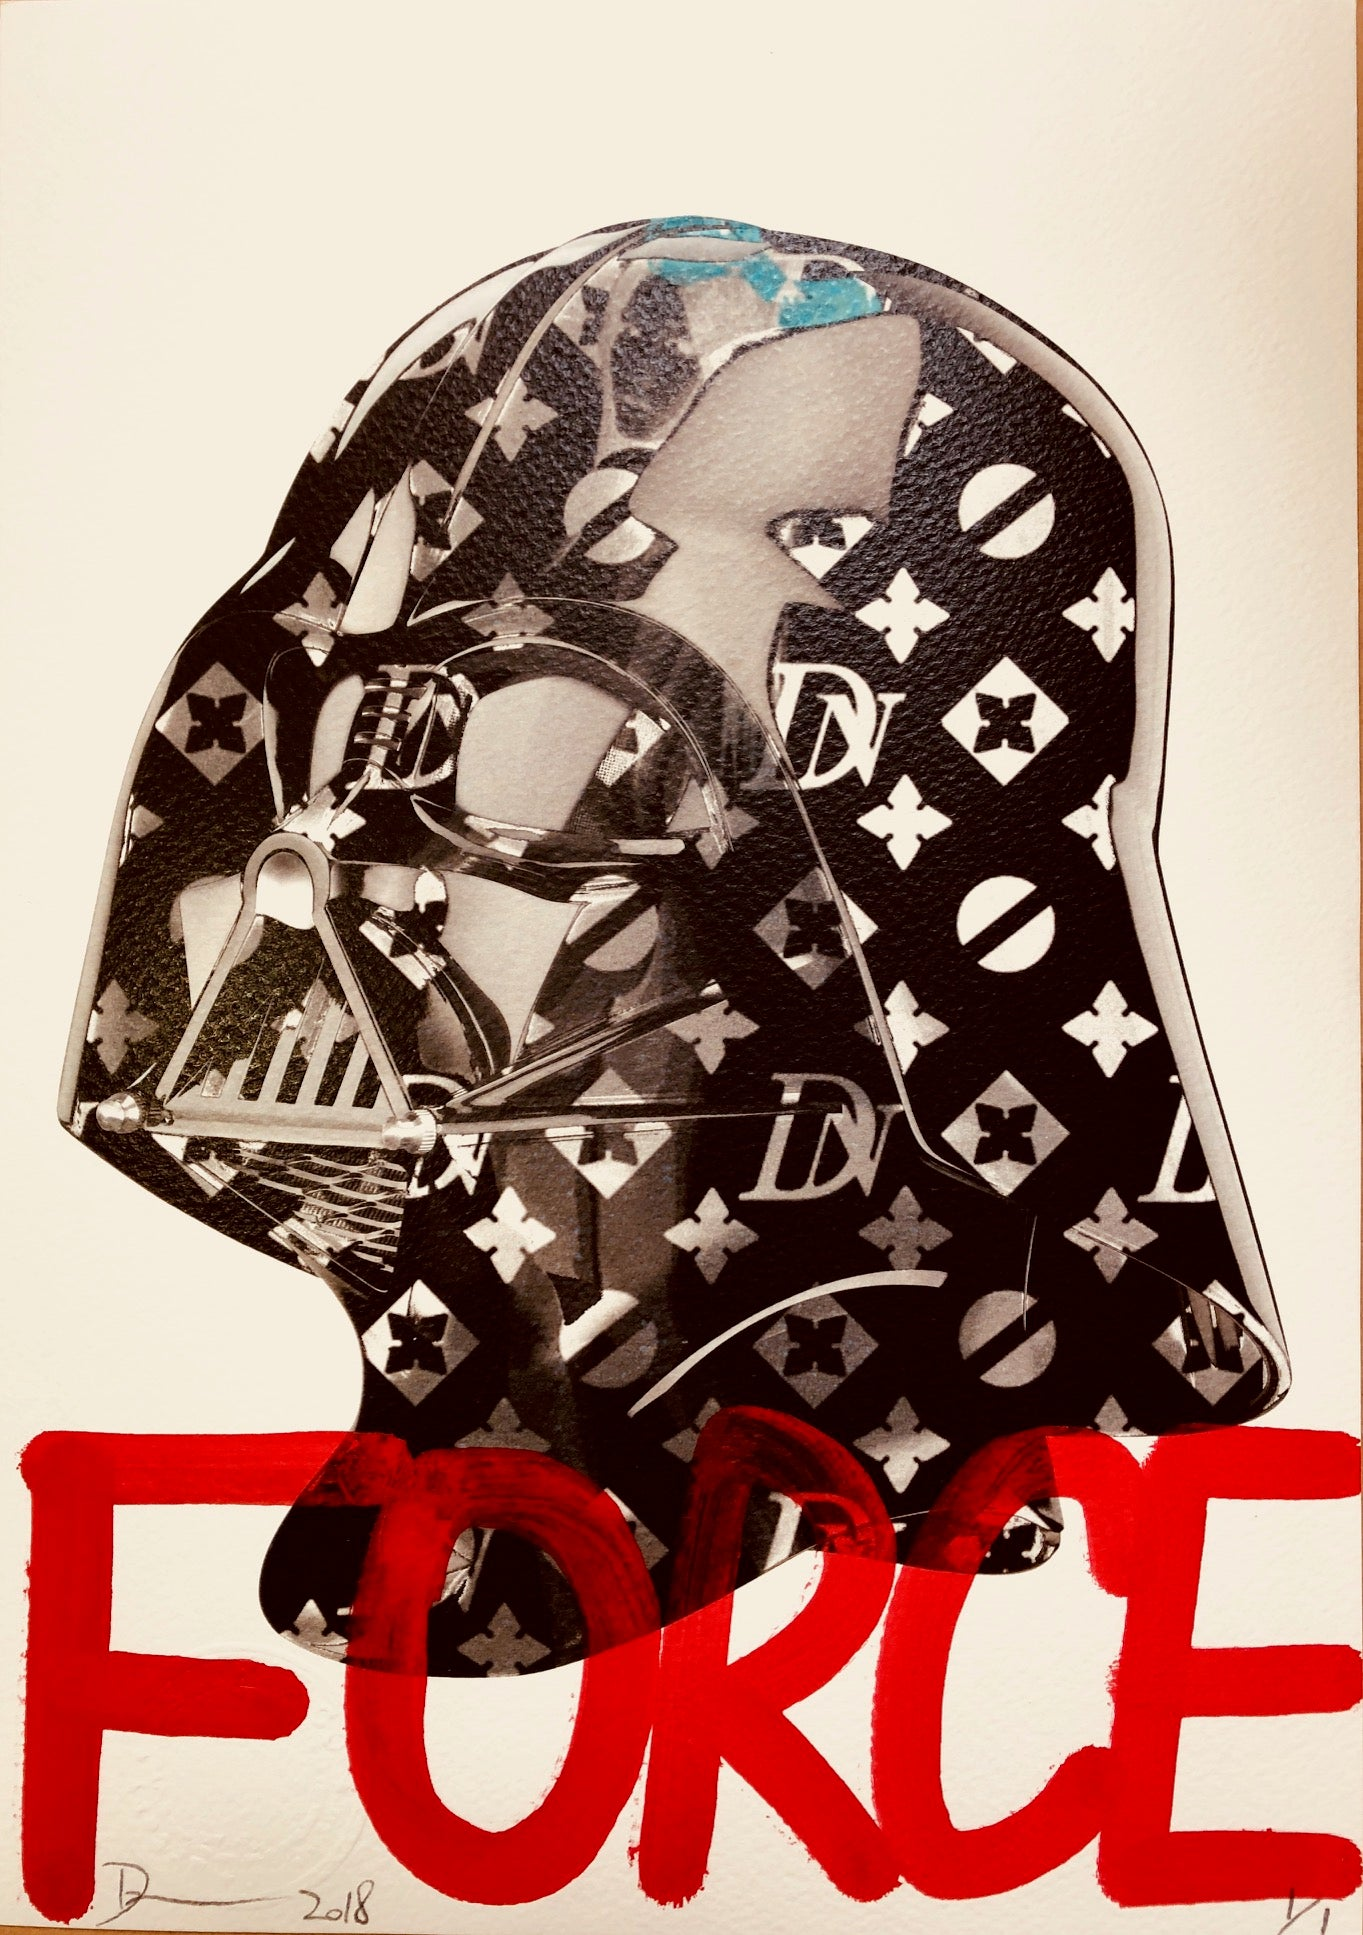 Vader FORCE 29x21cm (Edition of 1)